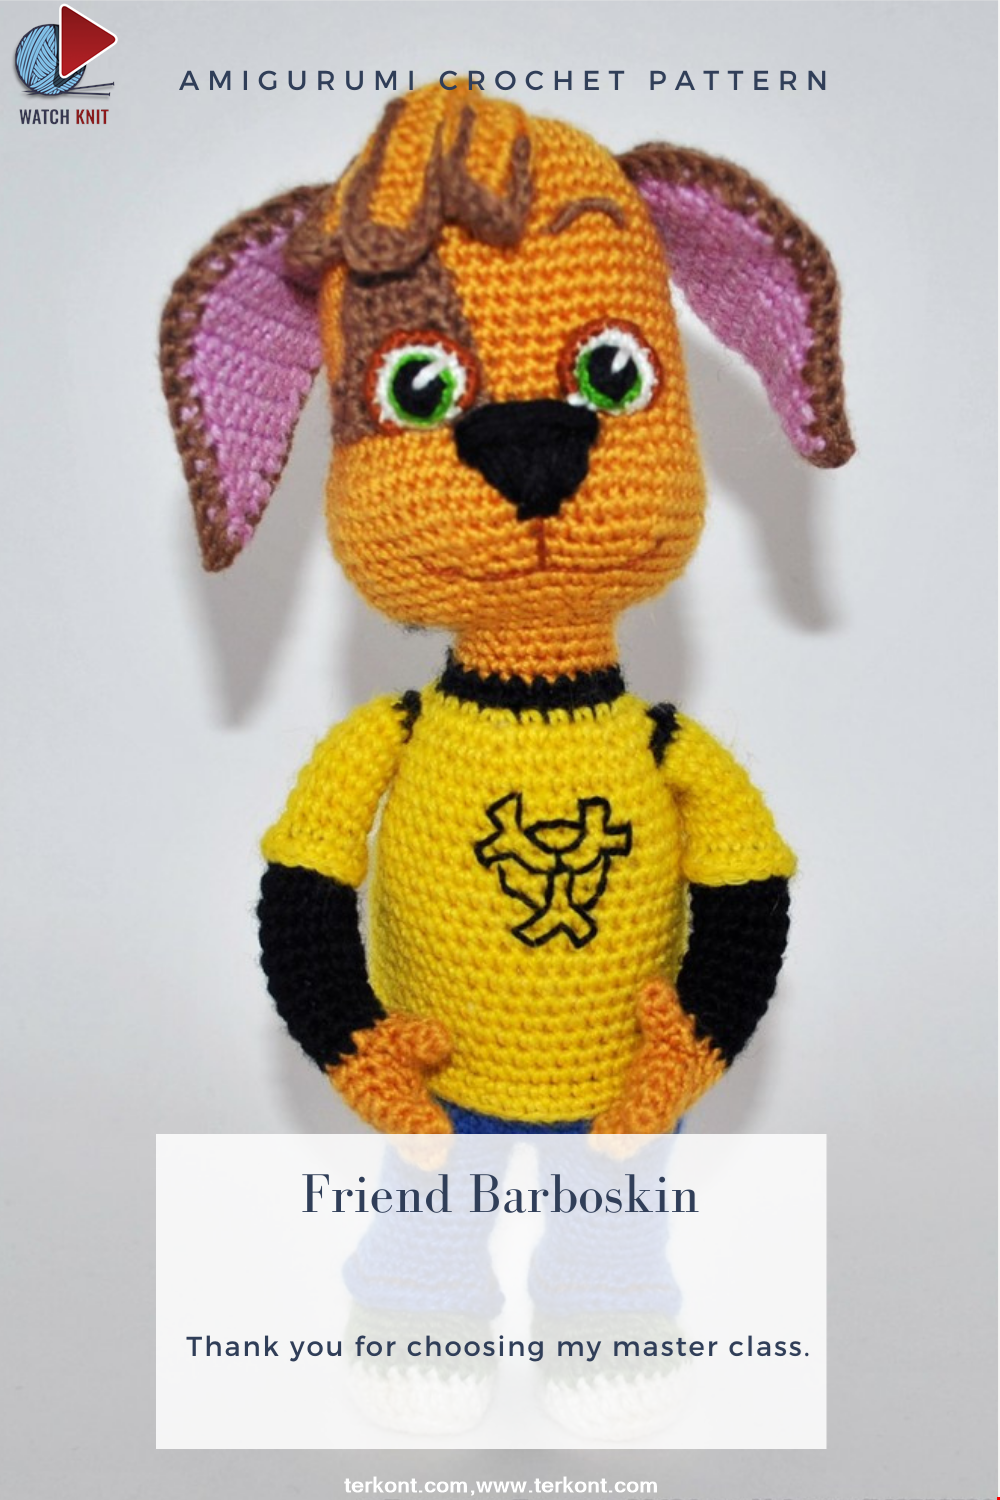 Amigurumi Friend Barboskin Crochet Pattern